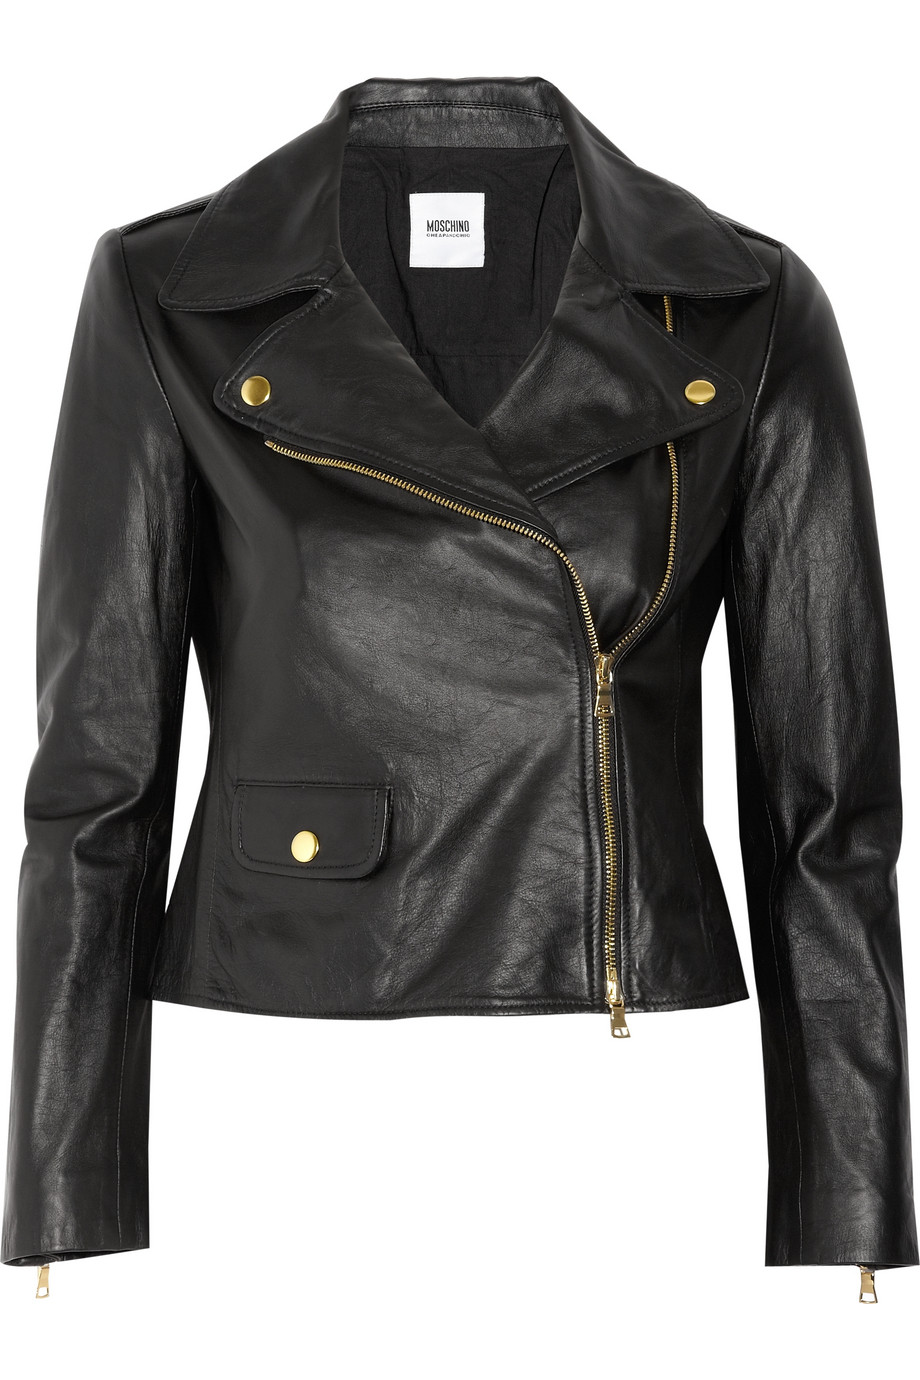 You can buy plenty of cheap, boxy cut, jackets made with low grade, corrected grain leather that will not hold up well over time. However a good quality jacket made of good materials are hard to come by.